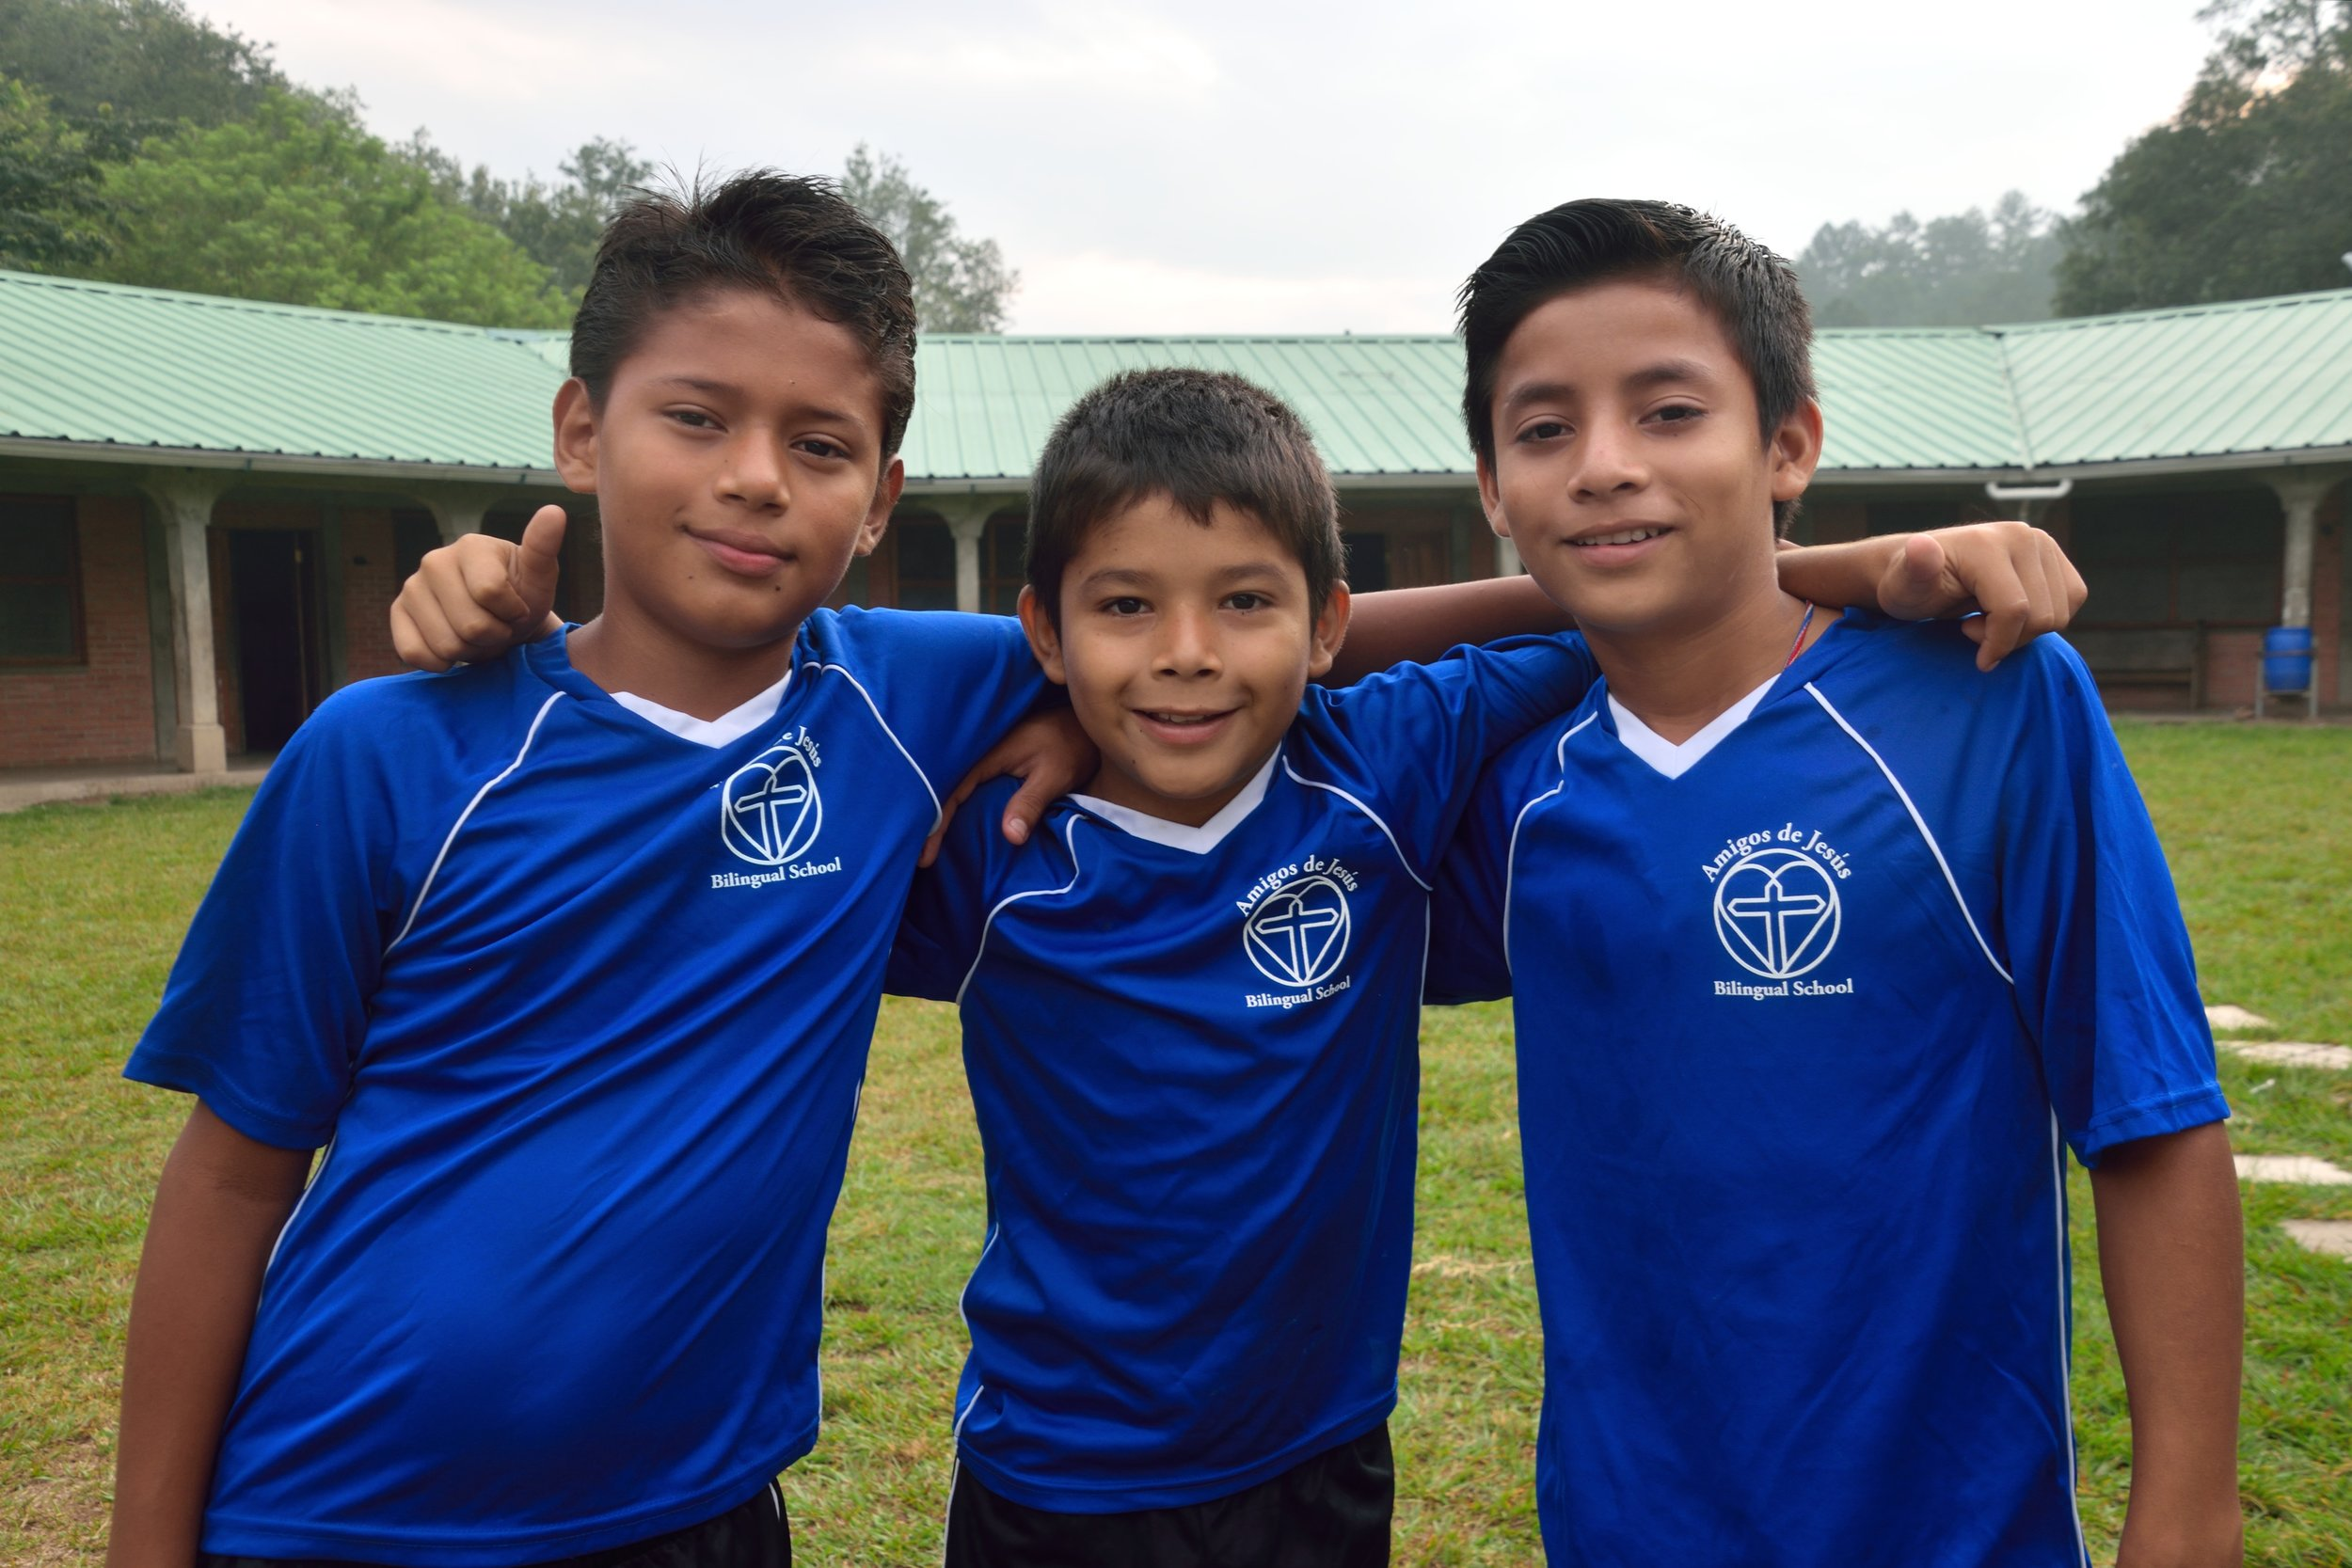 Jason, pictured in the middle, with two of his friends at the 'hogar' before the Honduran Independence Day Parade this past September. He is now in 6th grade at our bilingual school.